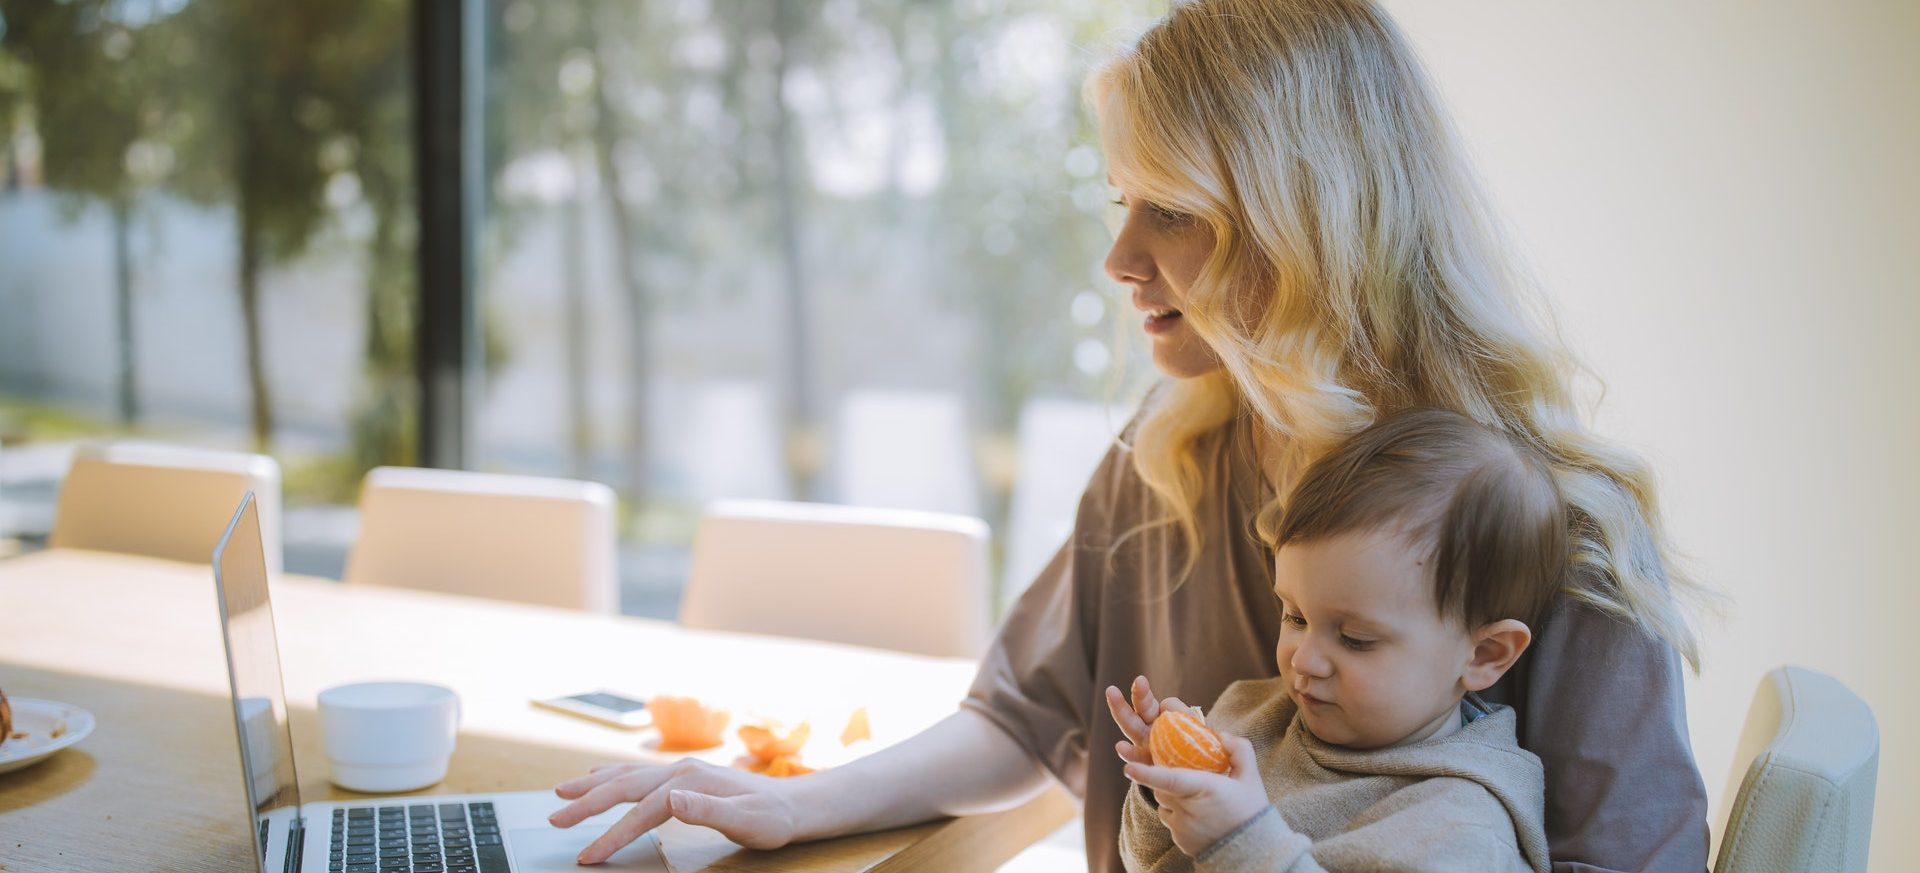 A woman holding her baby filling out an online form.